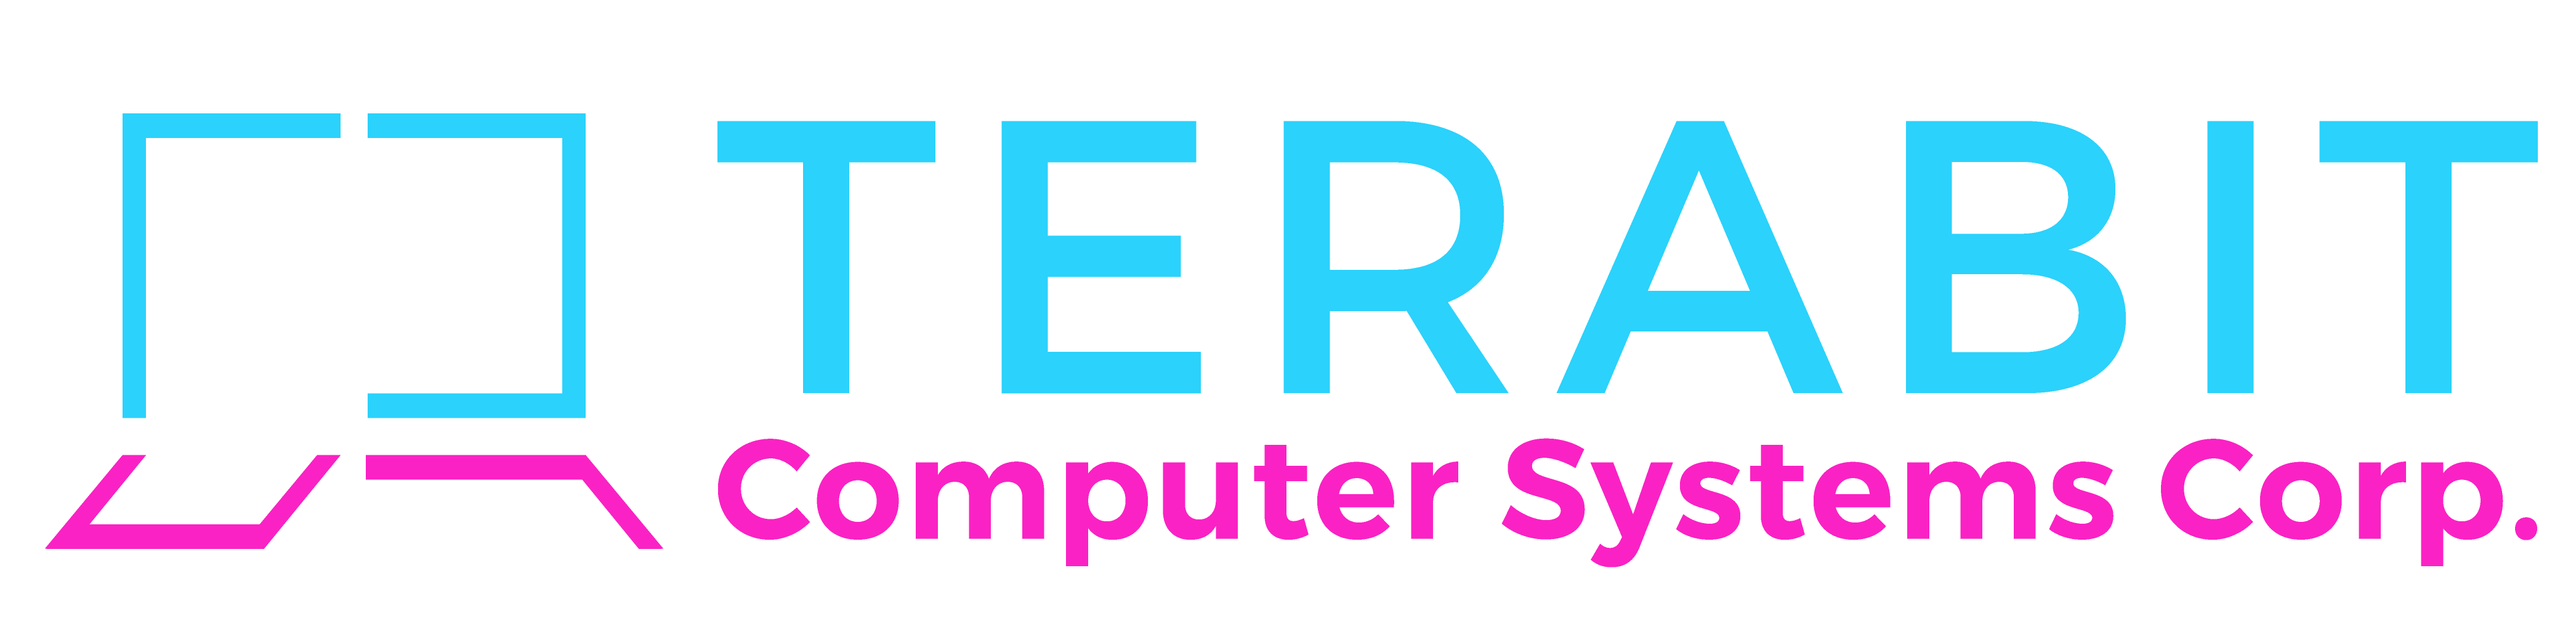 Terabit Computer Systems Corp.